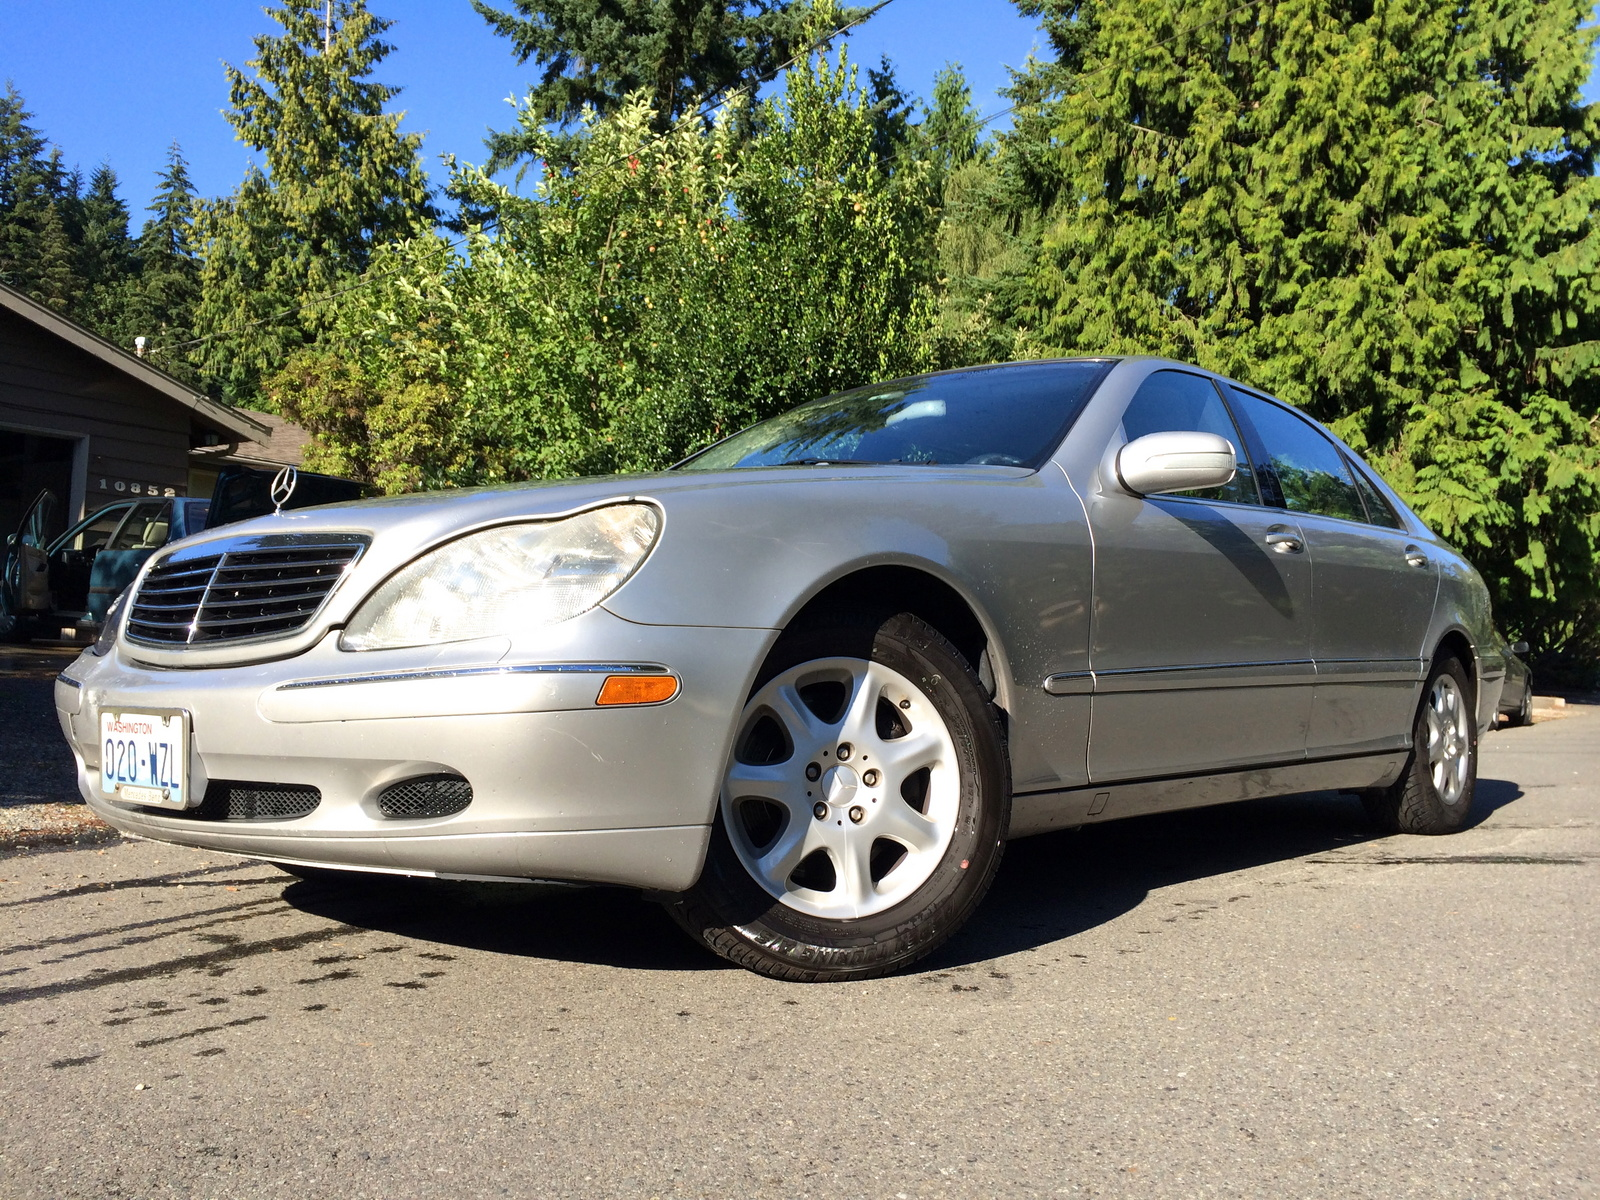 Used mercedes benz s class for sale seattle wa cargurus for Mercedes benz for sale cargurus